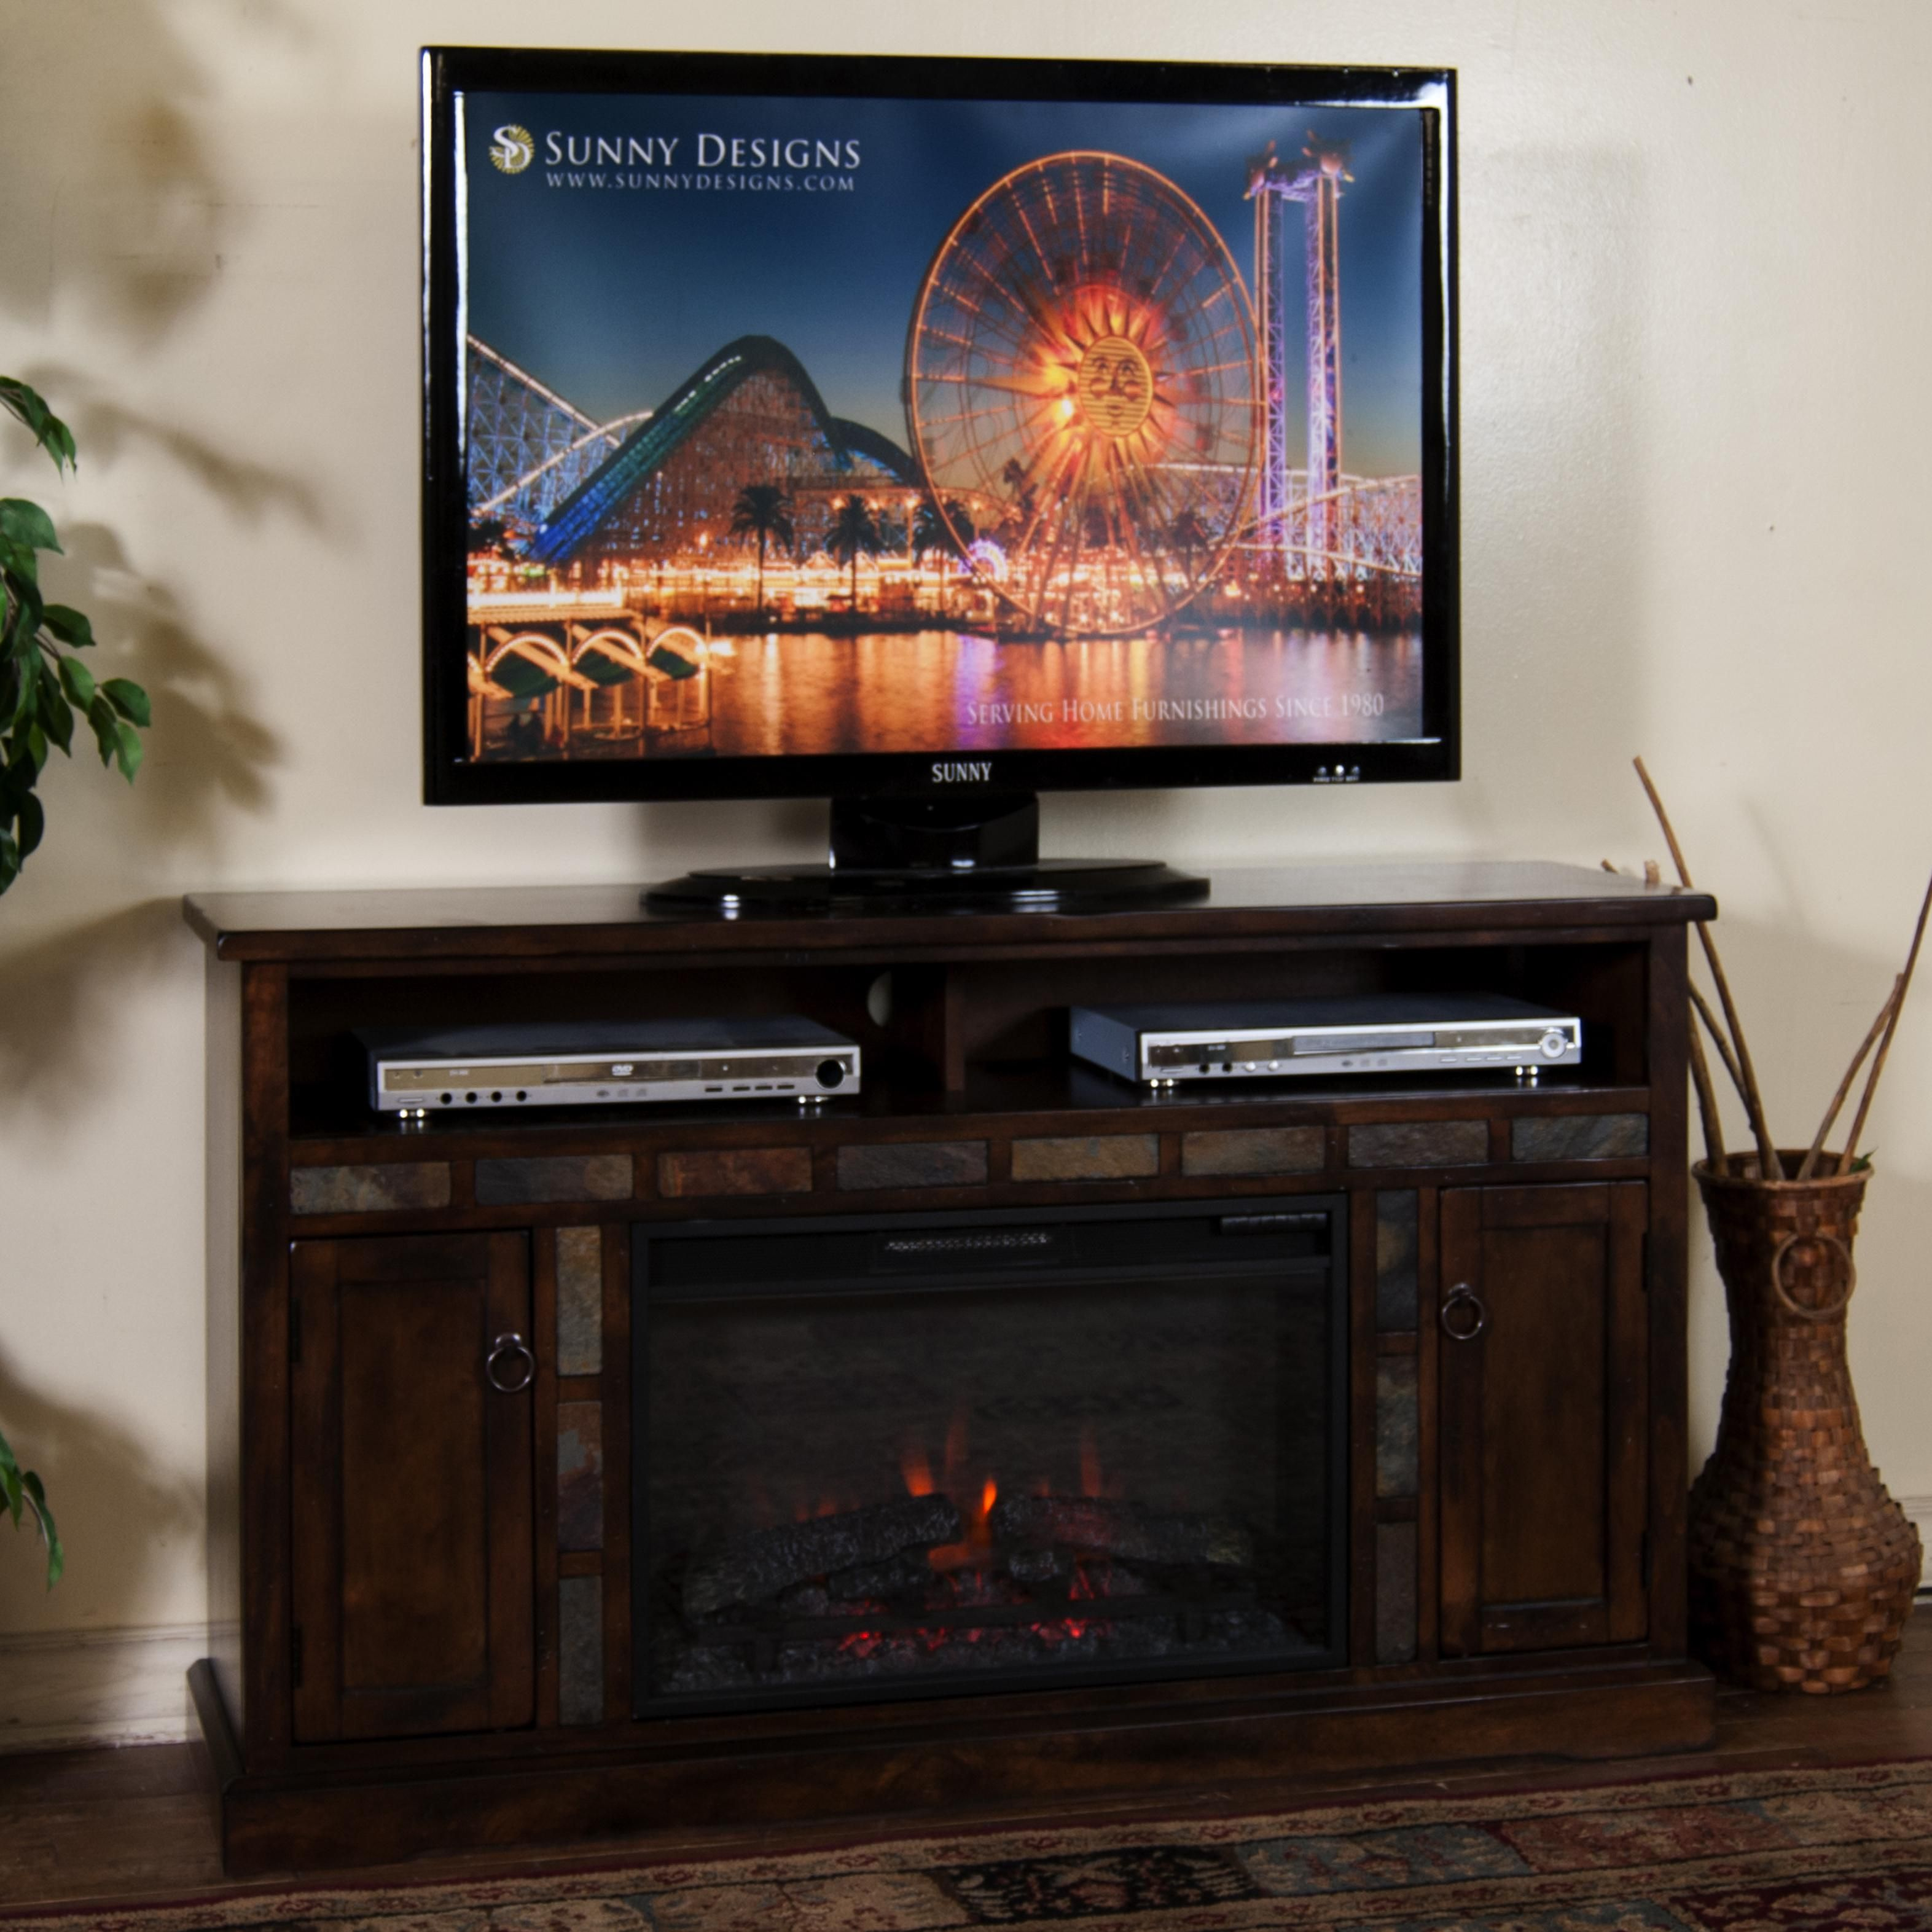 Fireplace TV Console by Sunny Designs in a darker shade...again what a better time of year to buy one of these?